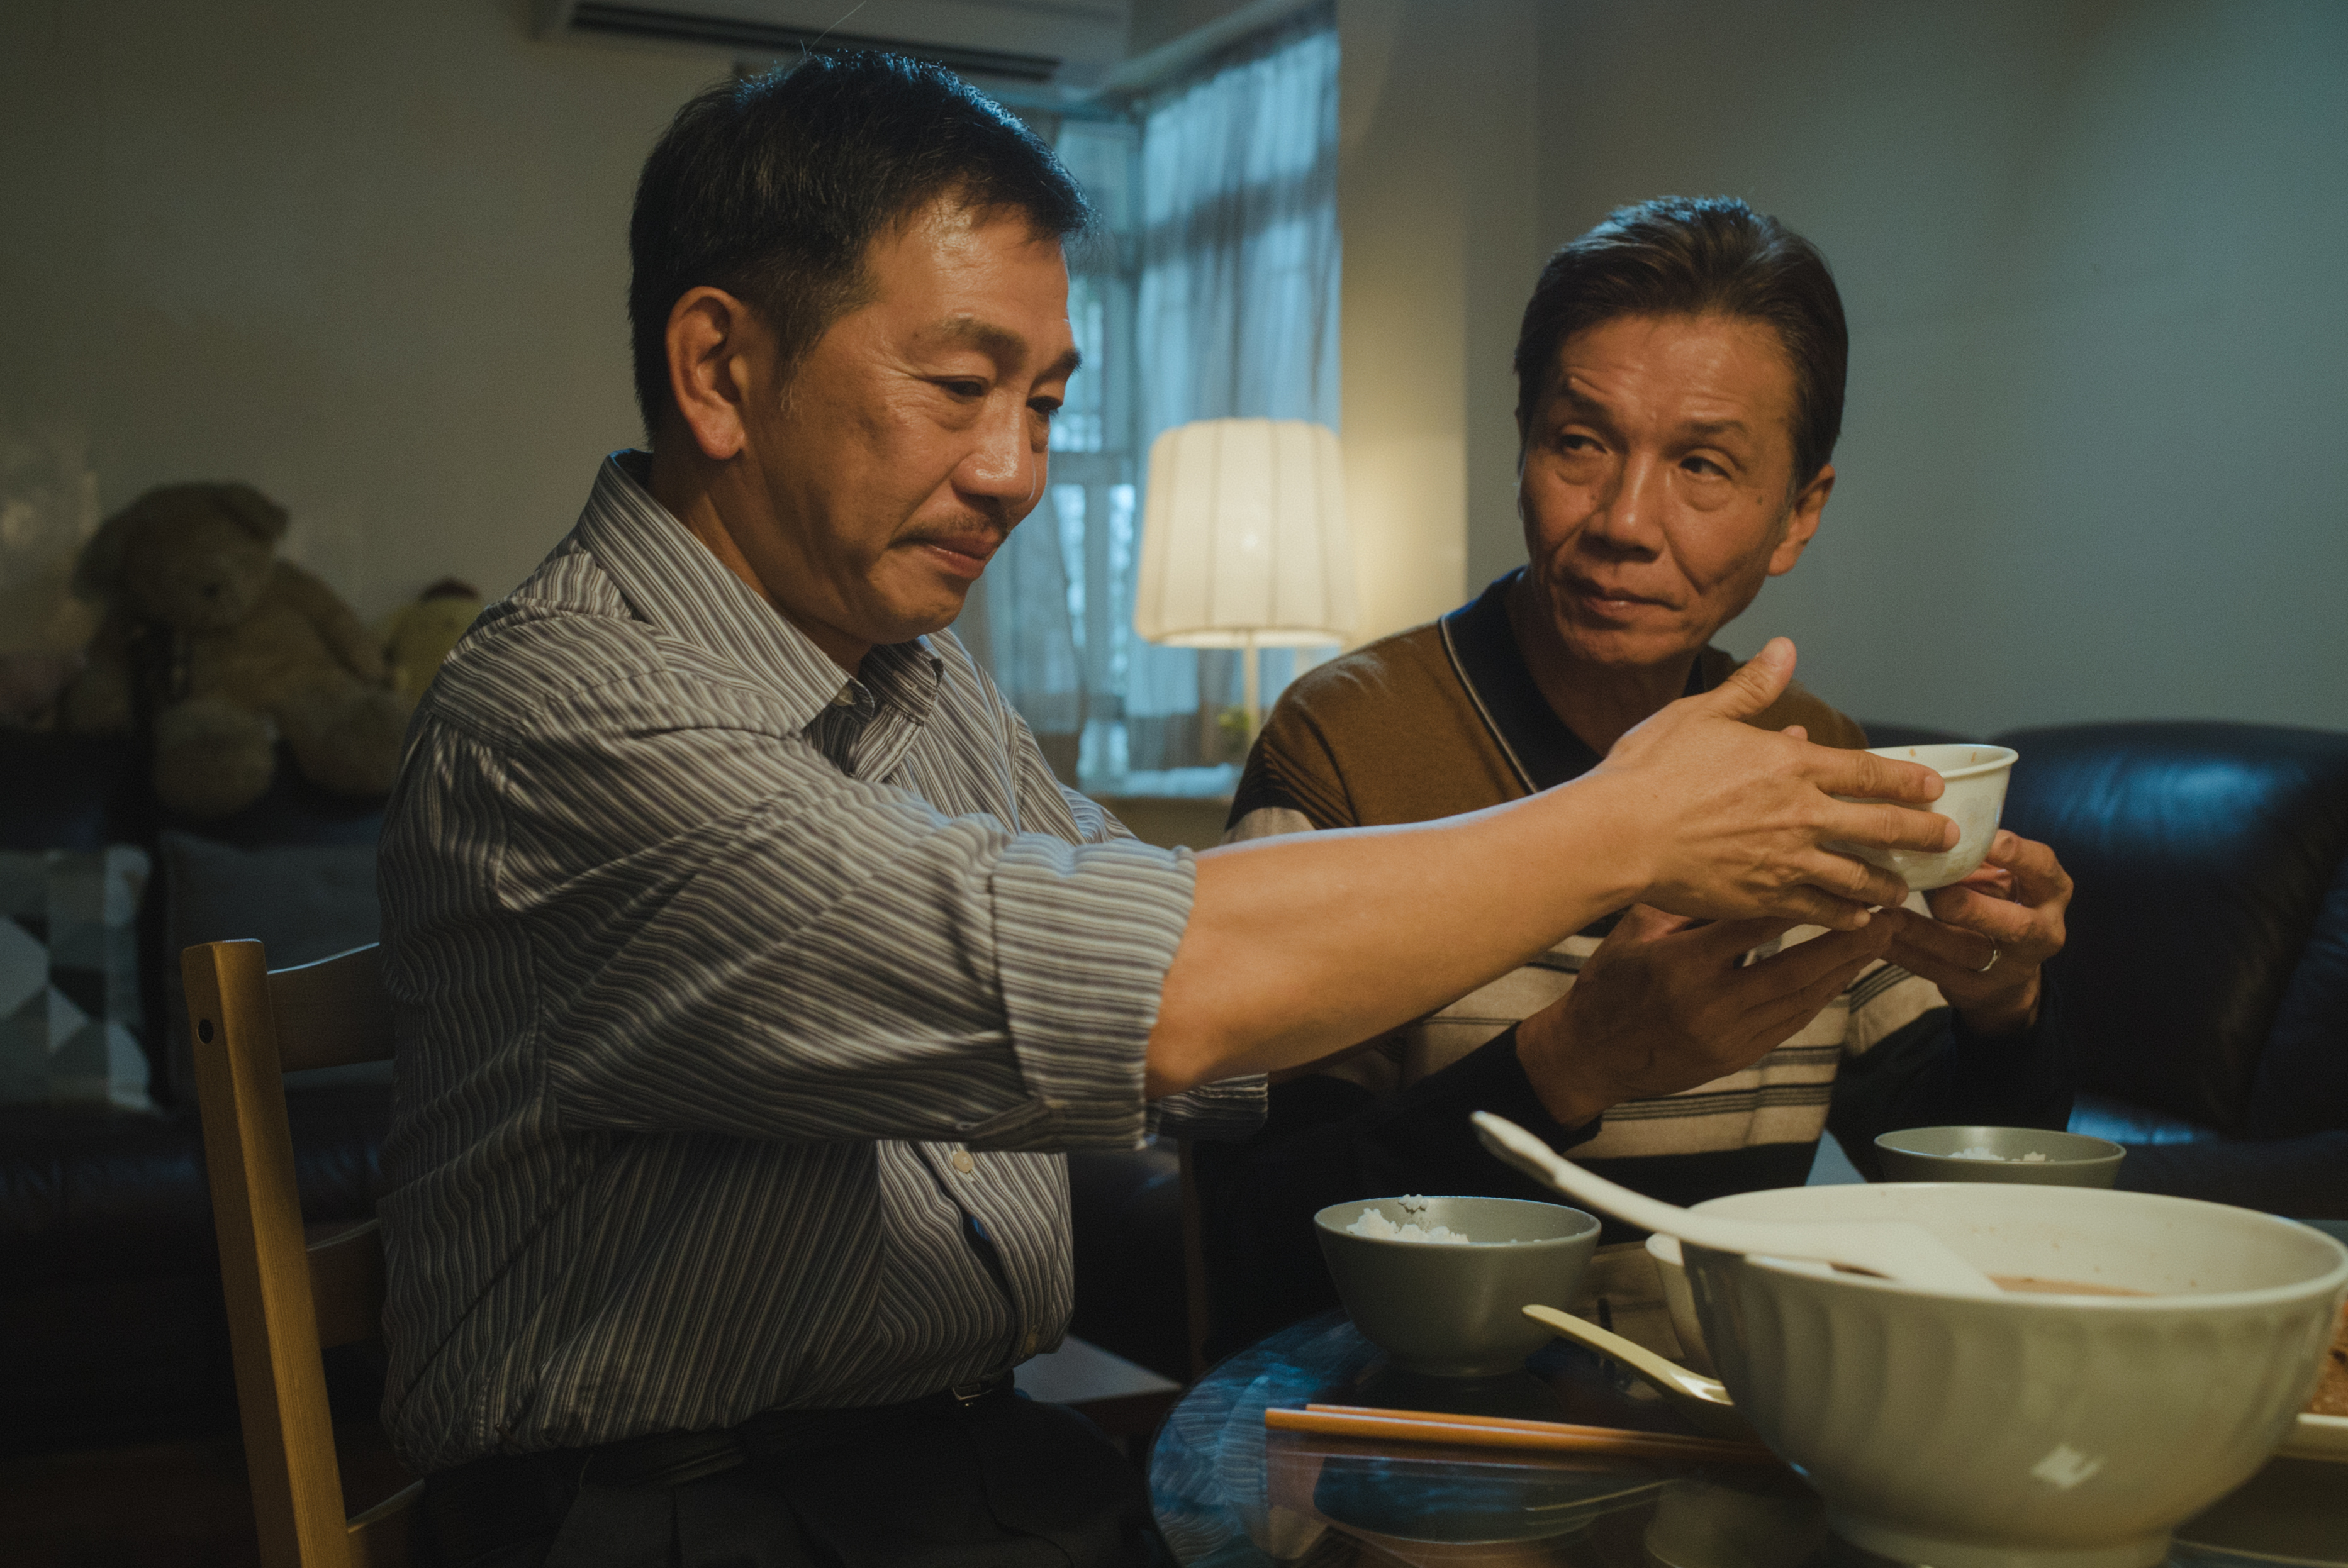 Elderly gay lovers Pak (right) and Hoi share a dinner together in 'Suk Suk'.